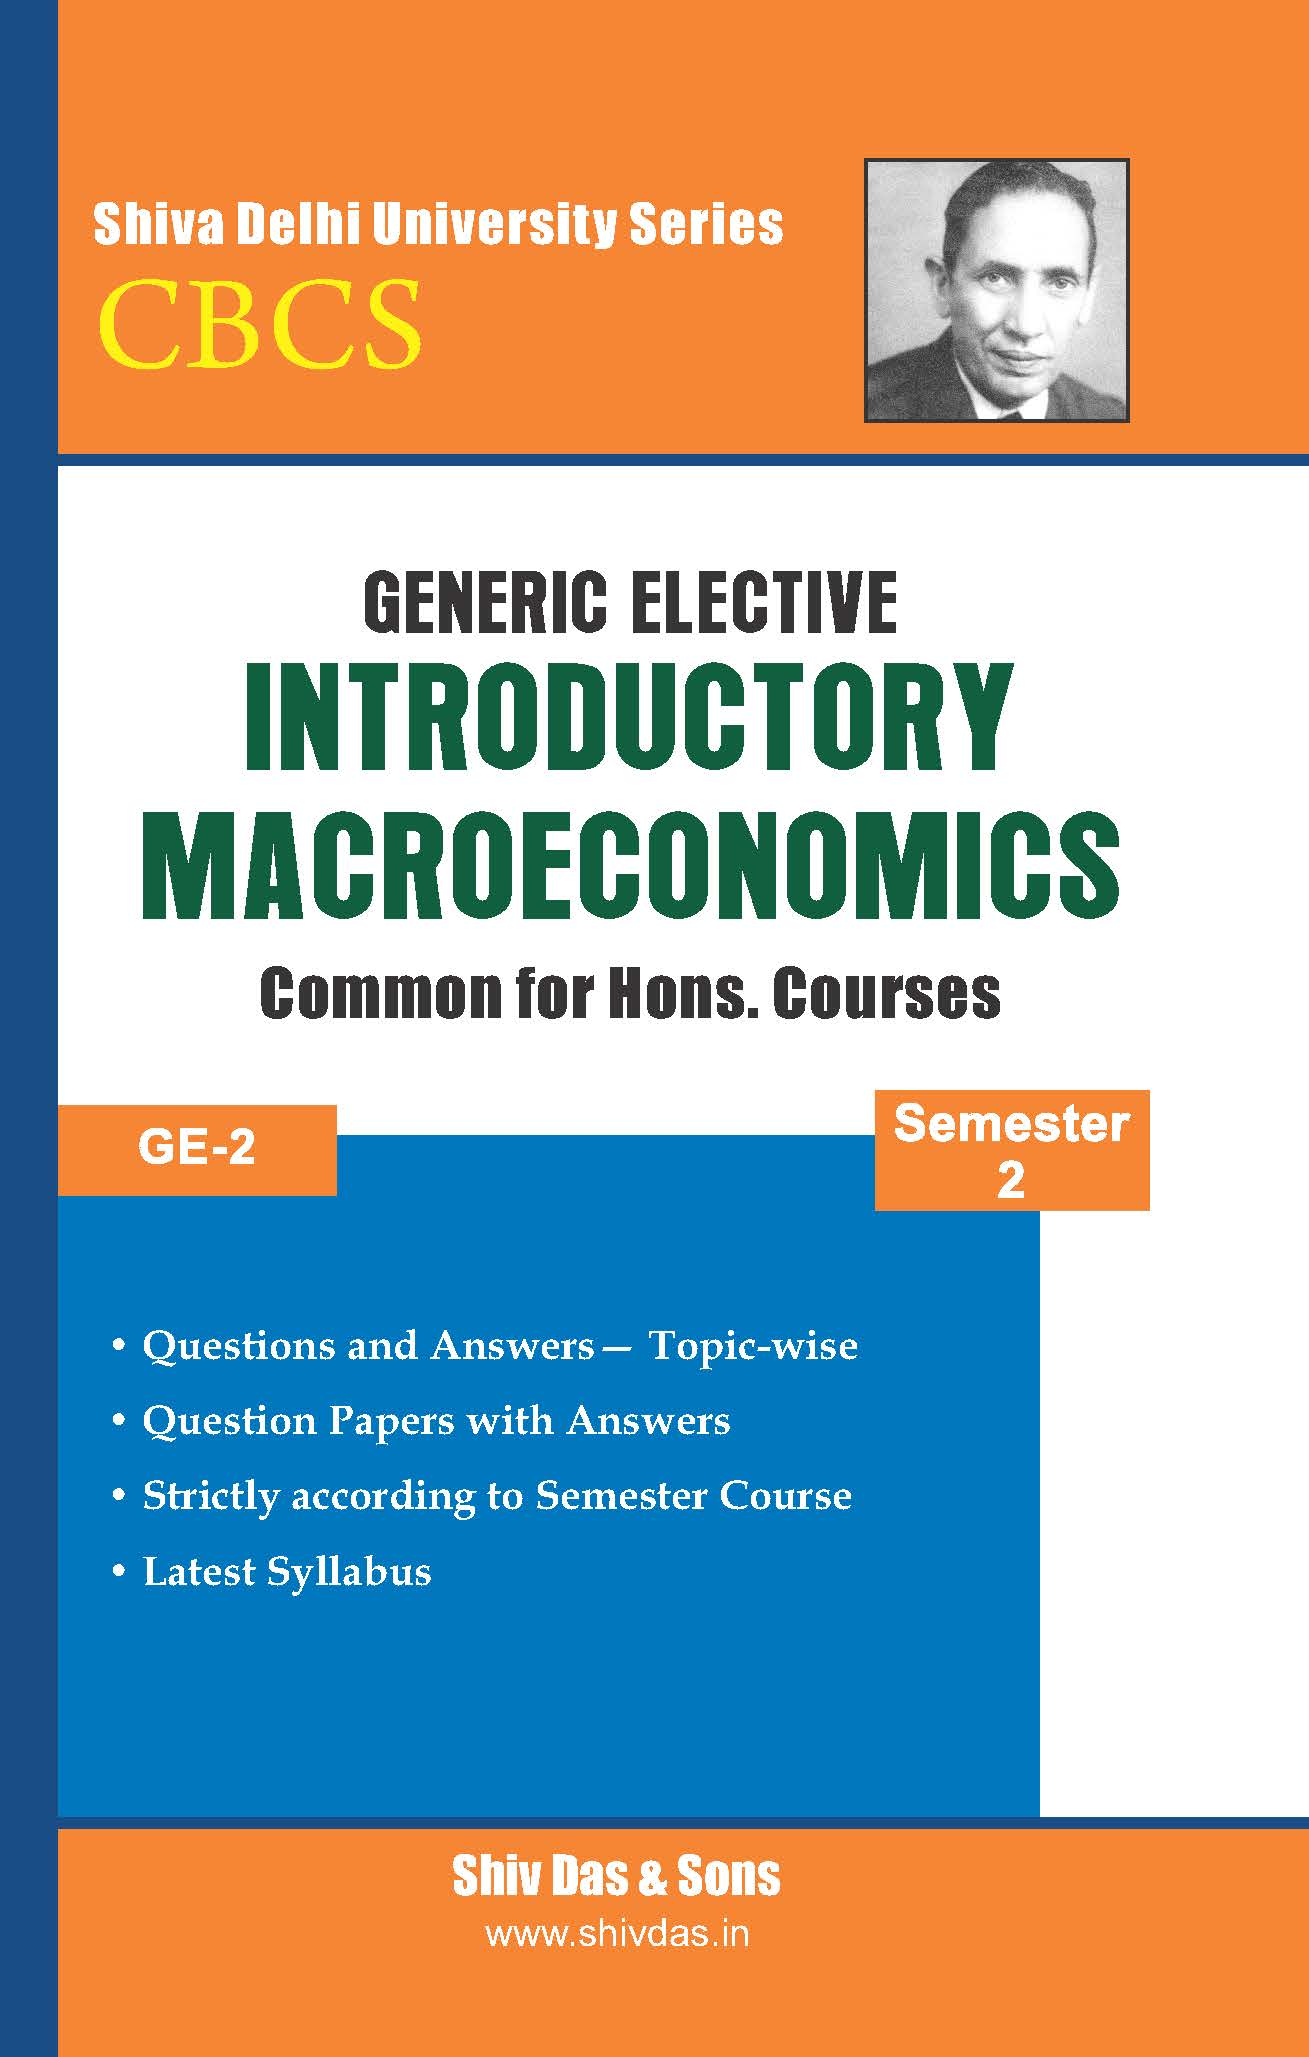 Introductory Macroeconomics for B.Com Hons Semester 2